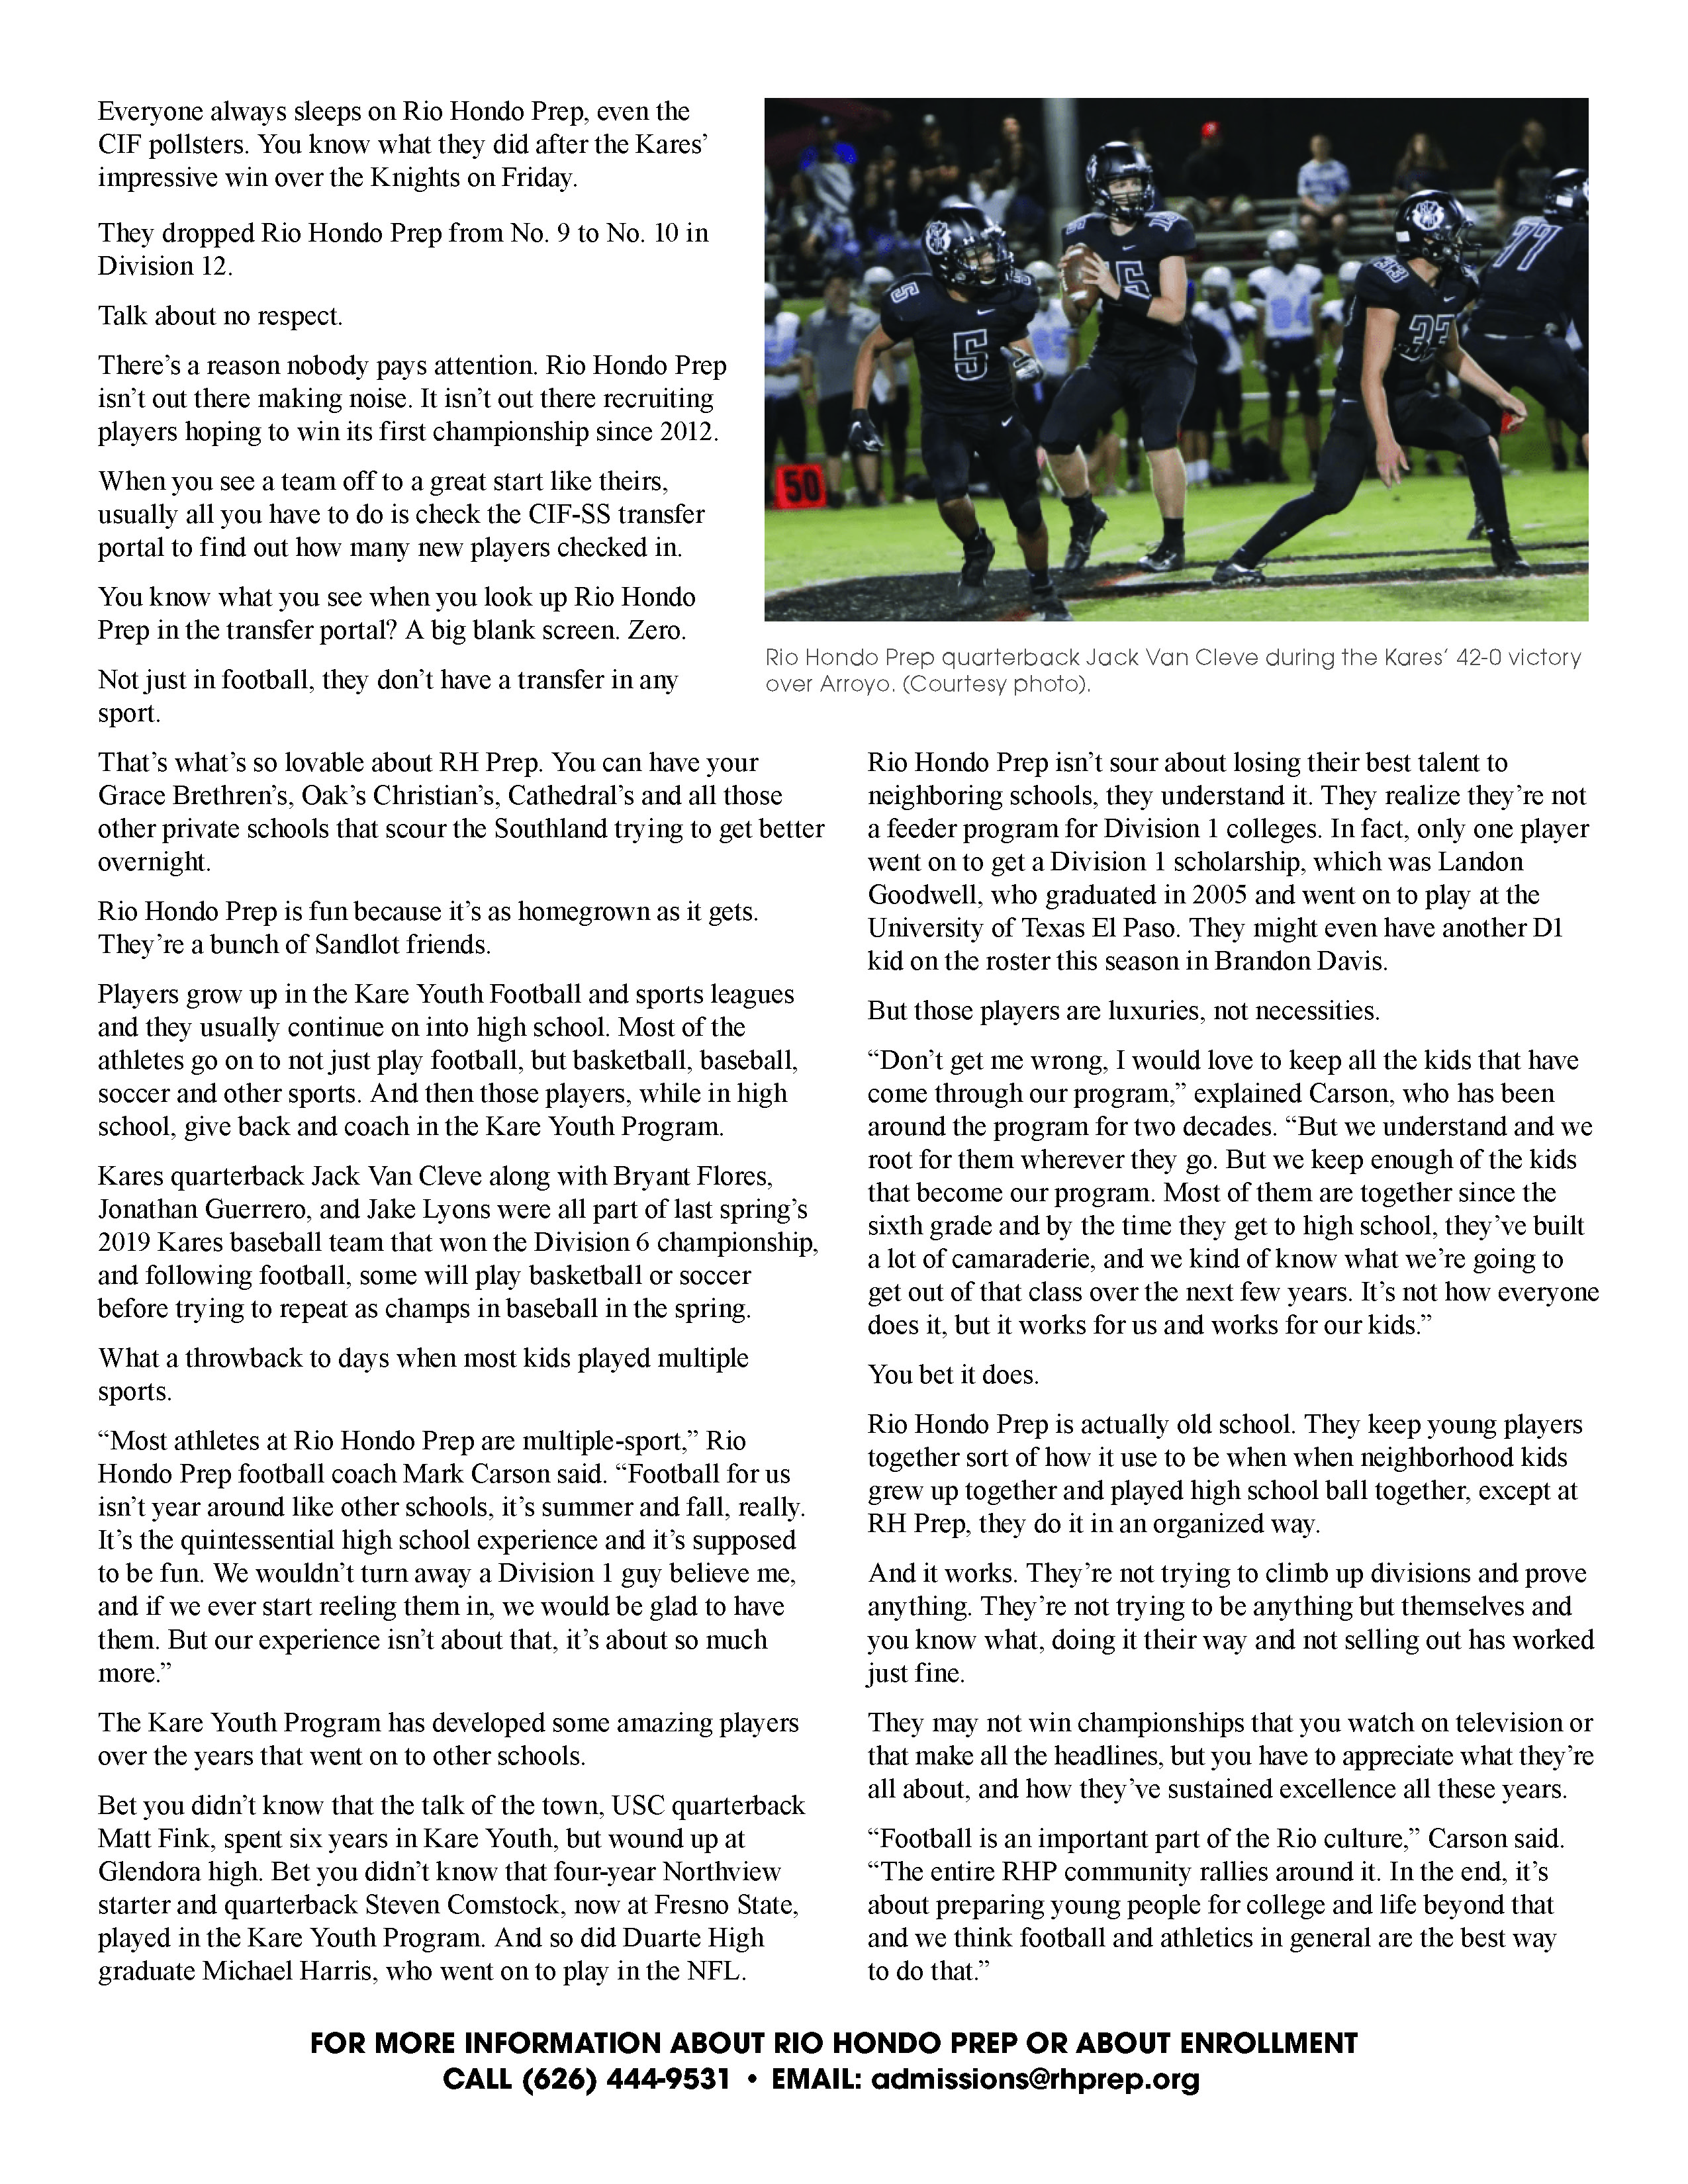 2019 RHP Tribune Article 09.26.2019 FINAL_Page_2